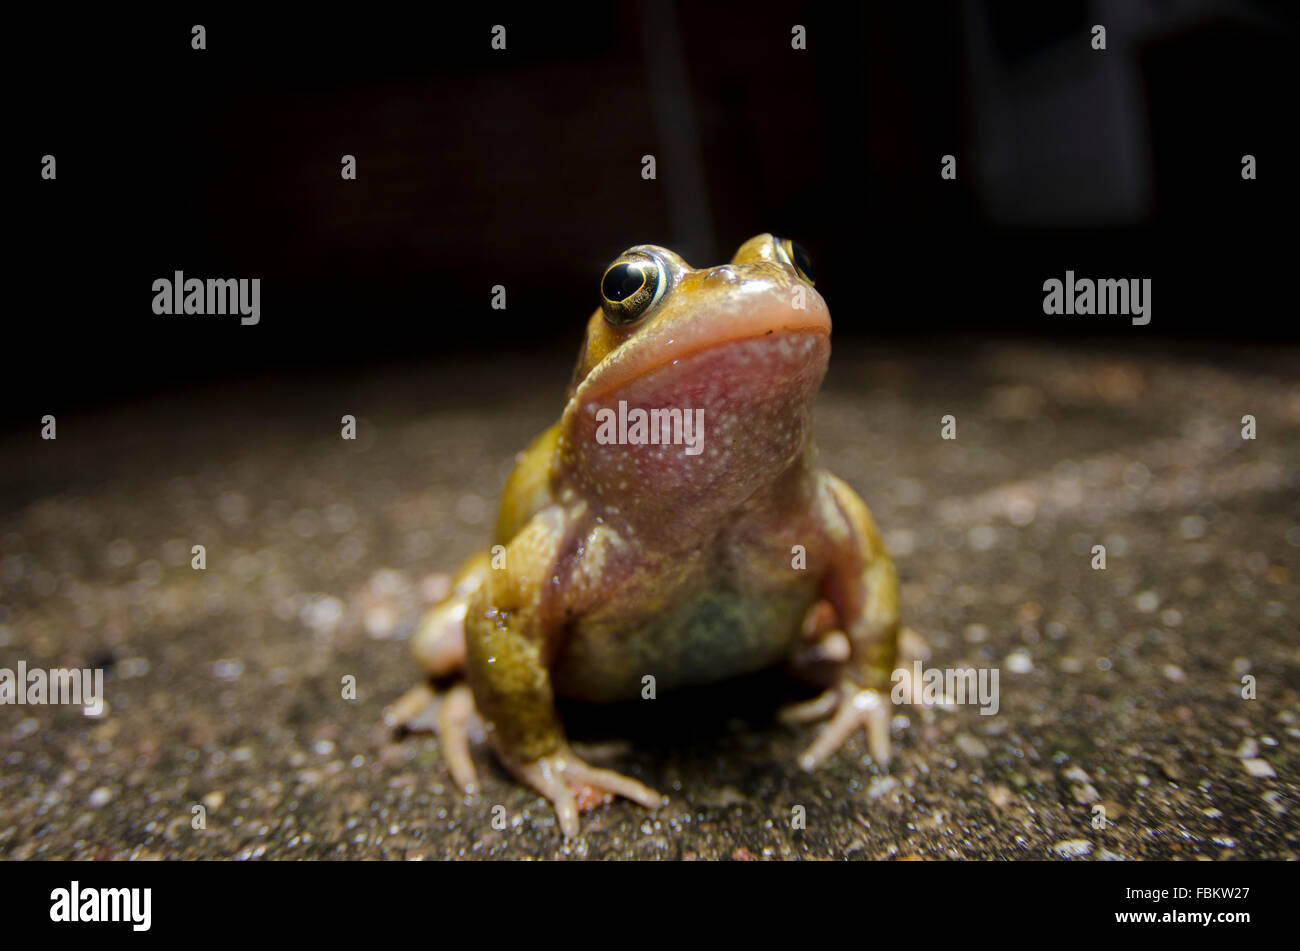 Common Frog close up at night - Stock Image